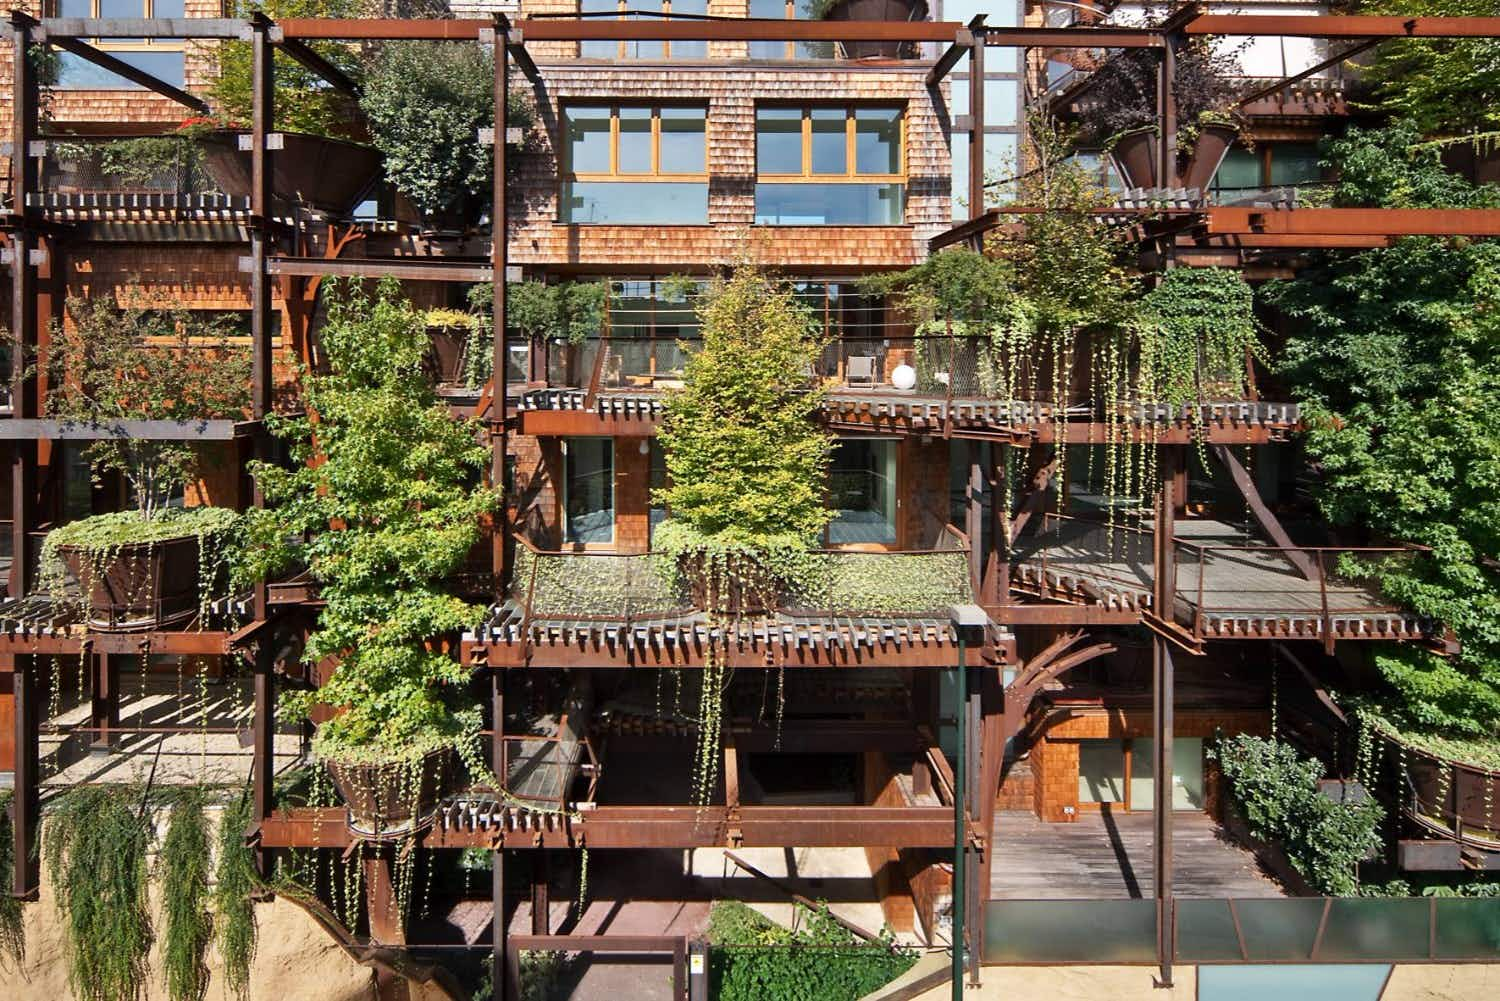 Indulge your childhood dreams by living in this grown-up tree house in Italy